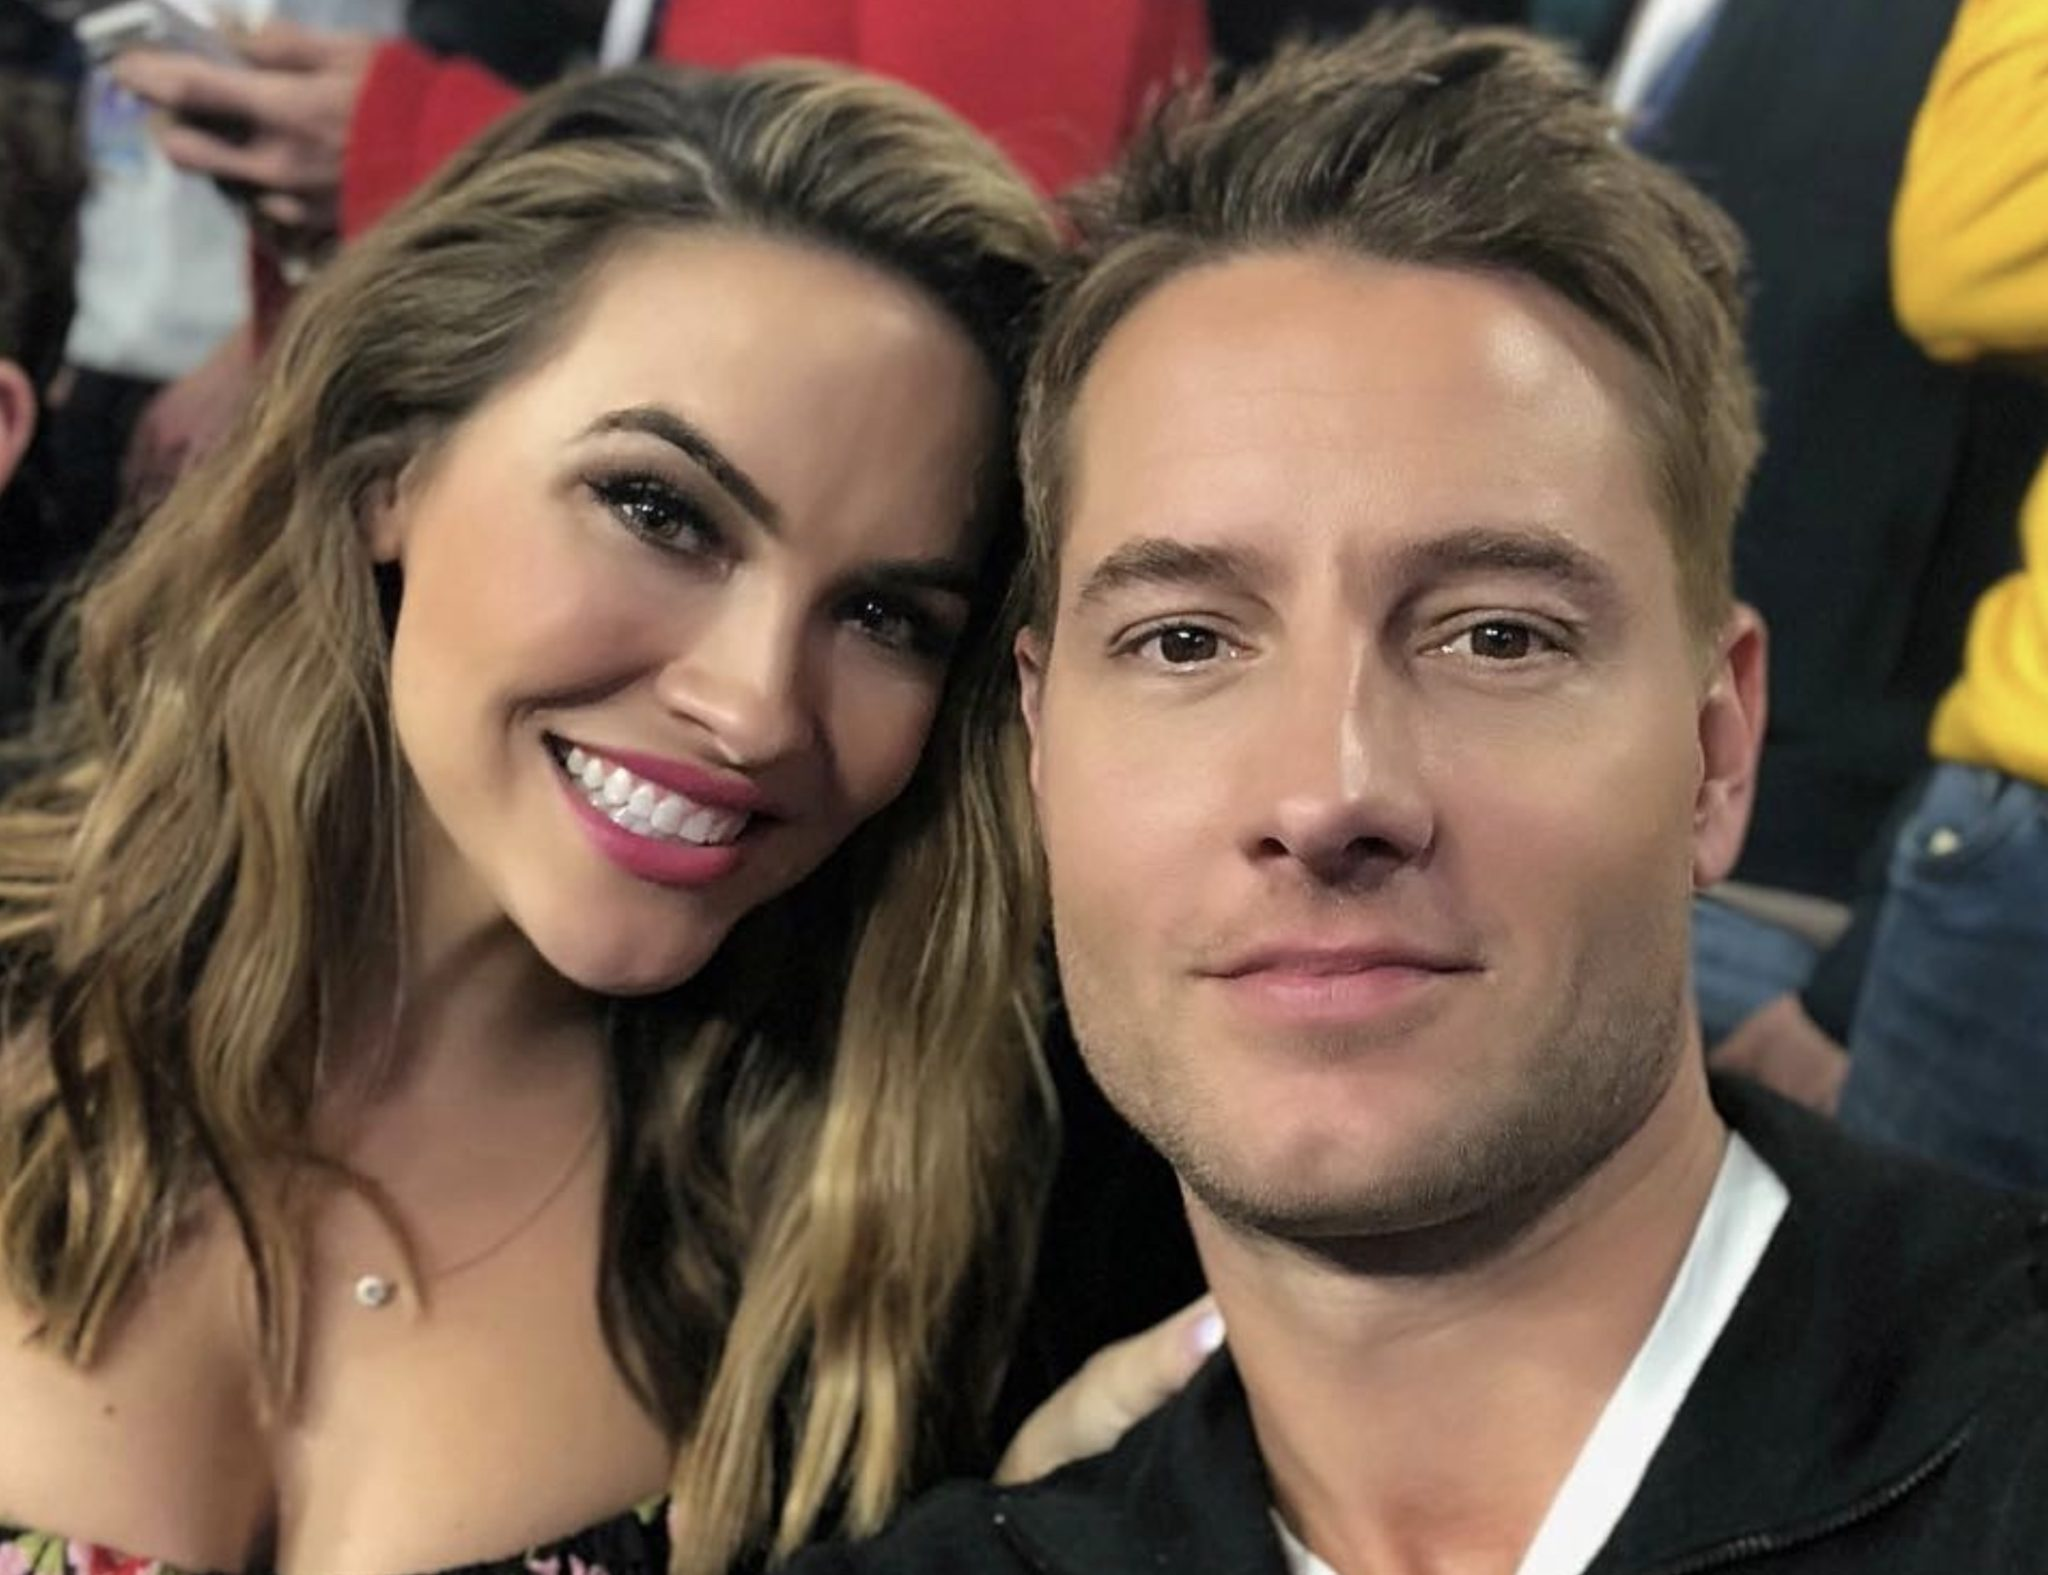 Chrishell Stause, Selling Sunset, Justin Hartley, This Is Us-https://www.instagram.com/p/Bey8u8gh5tR/